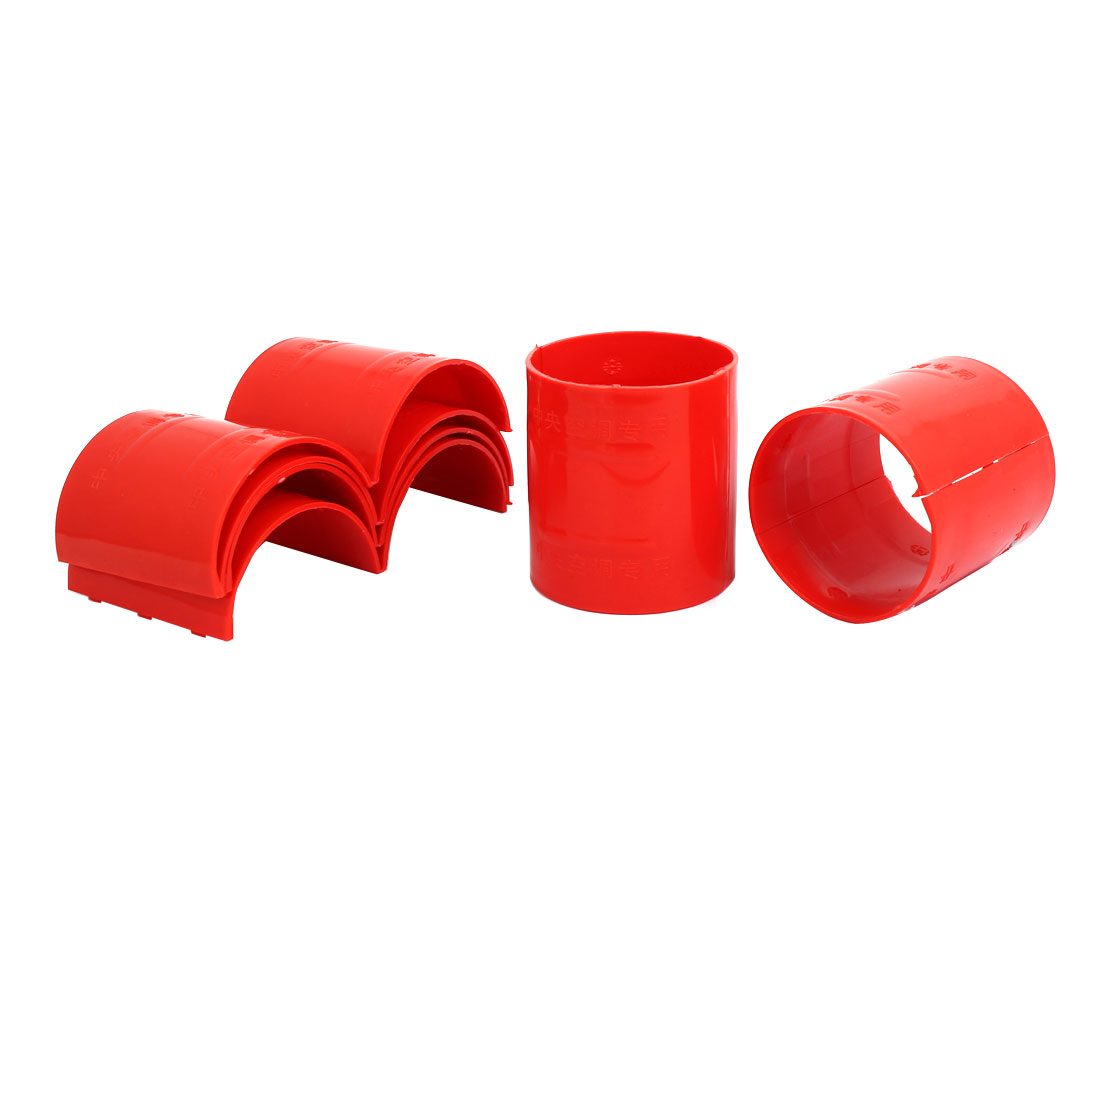 75mm Dia 2mm Thickness Central Air Conditioning Pipe Tube Clamp Red 6pcs